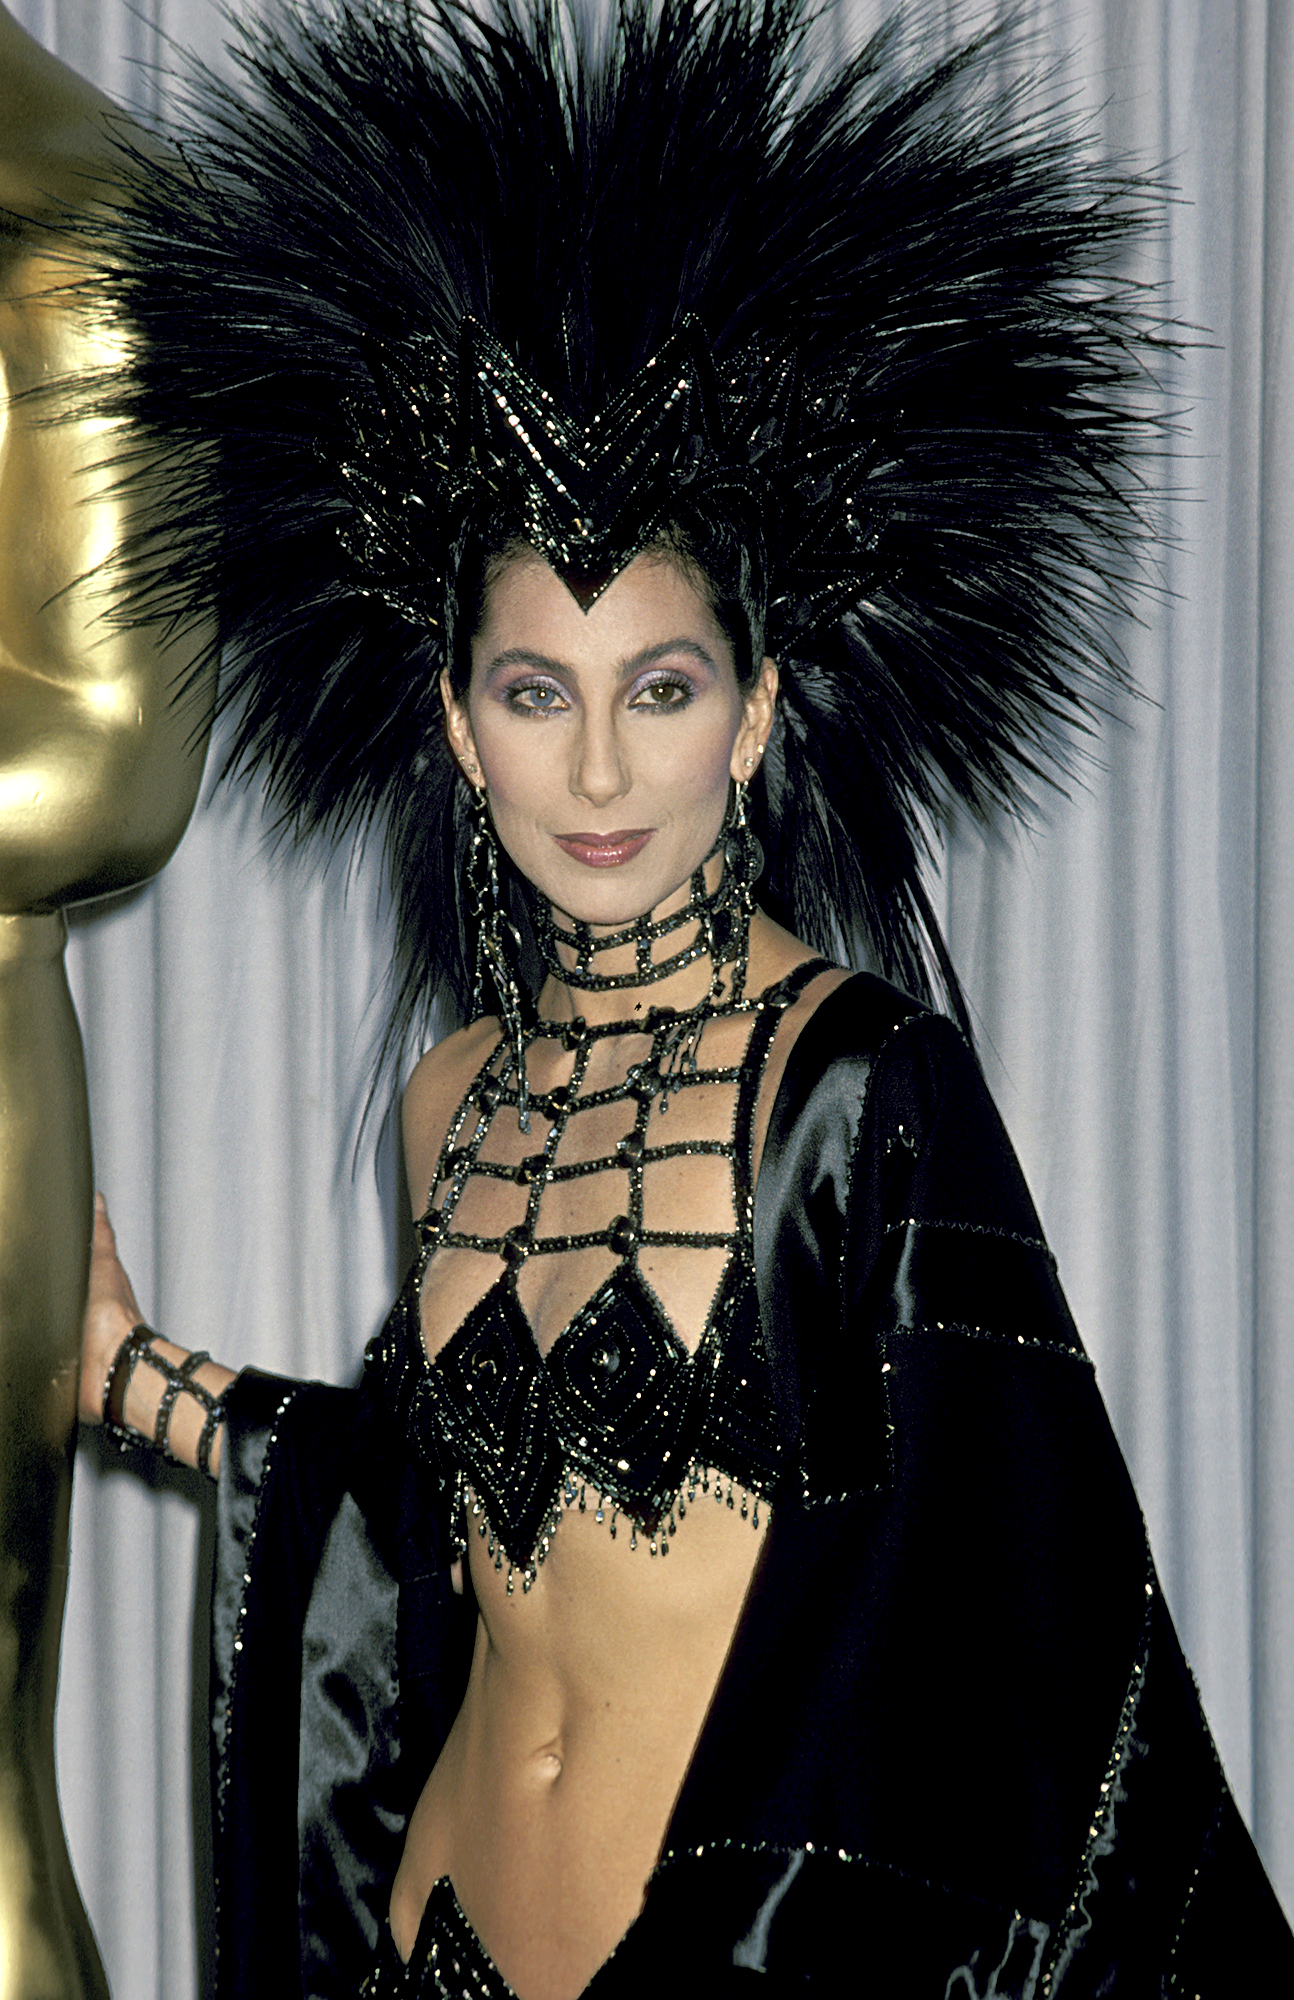 1986-Cher - Showing off her toned tummy, Cher looked statuesque at the Oscars in an embellished black gown and a giant feathered headpiece.